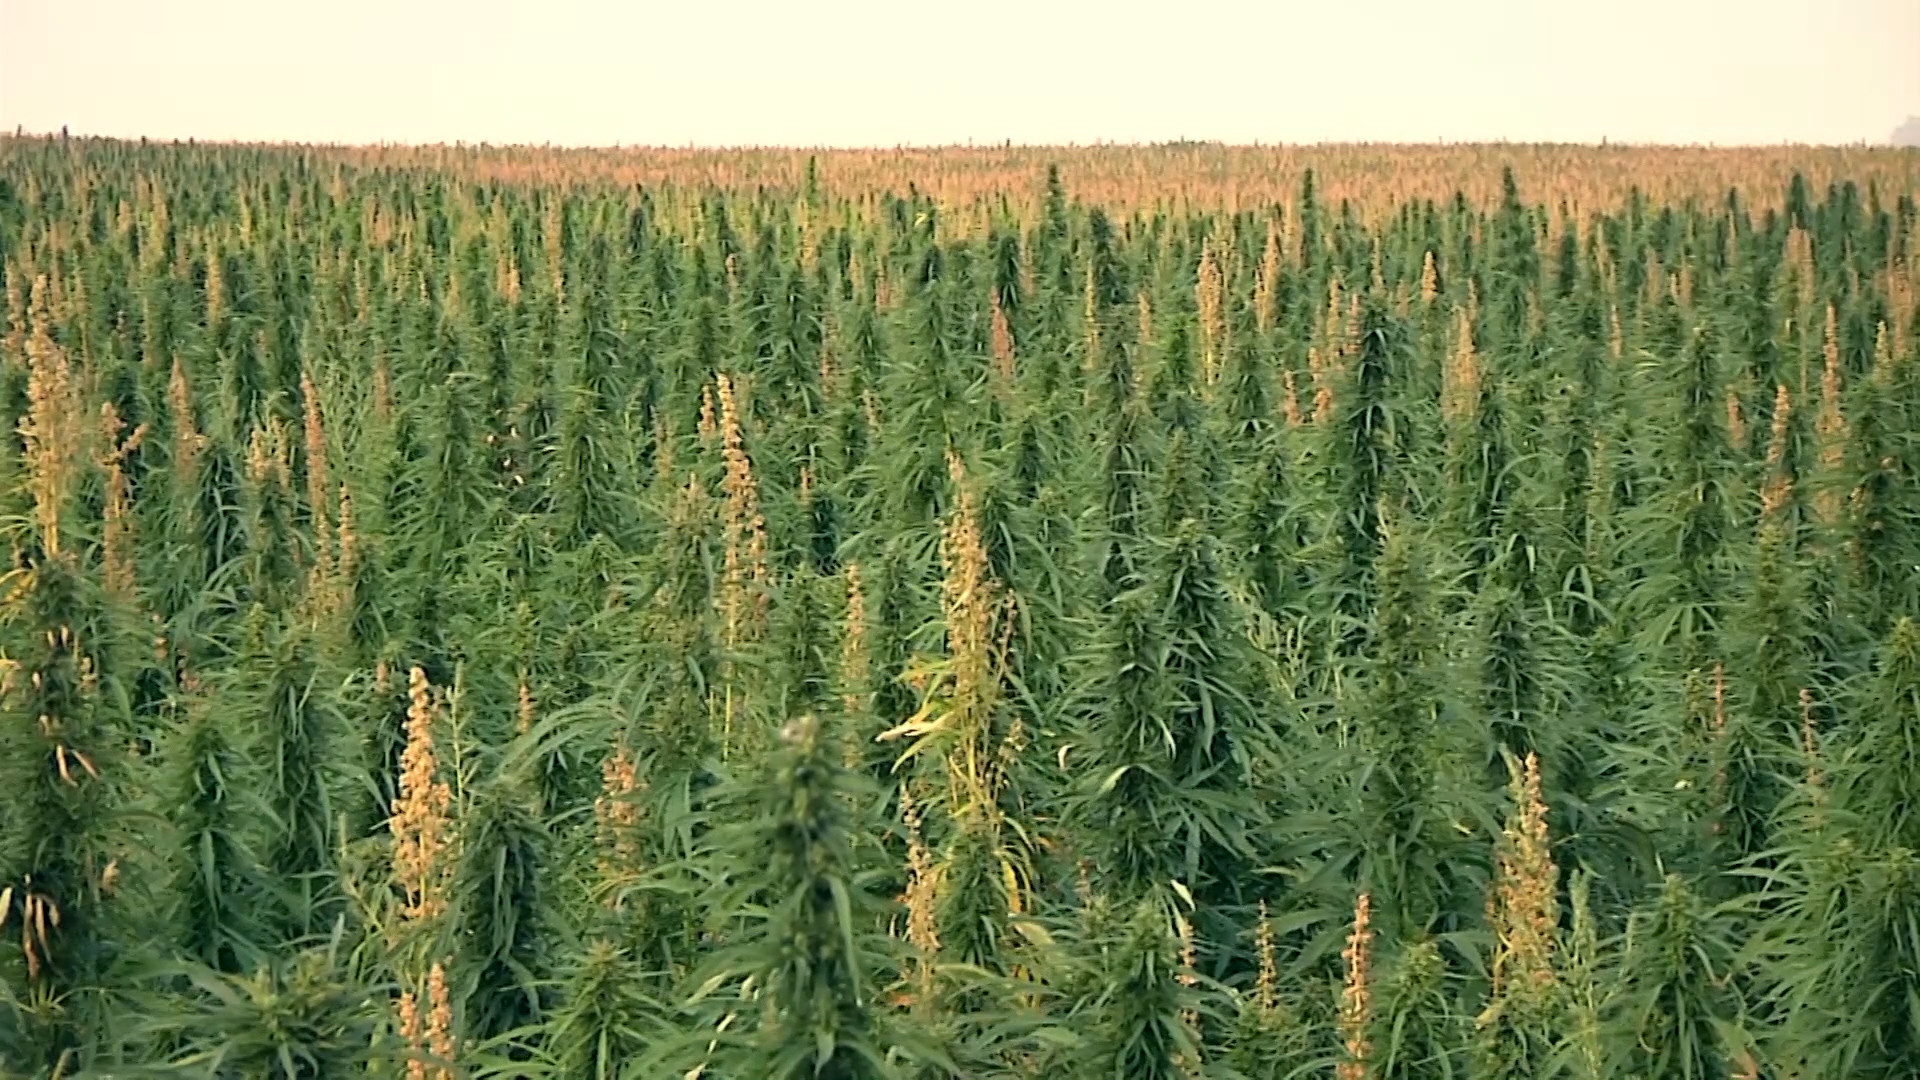 U.S. Hemp Survey: Poised to Become 4th Major Crop